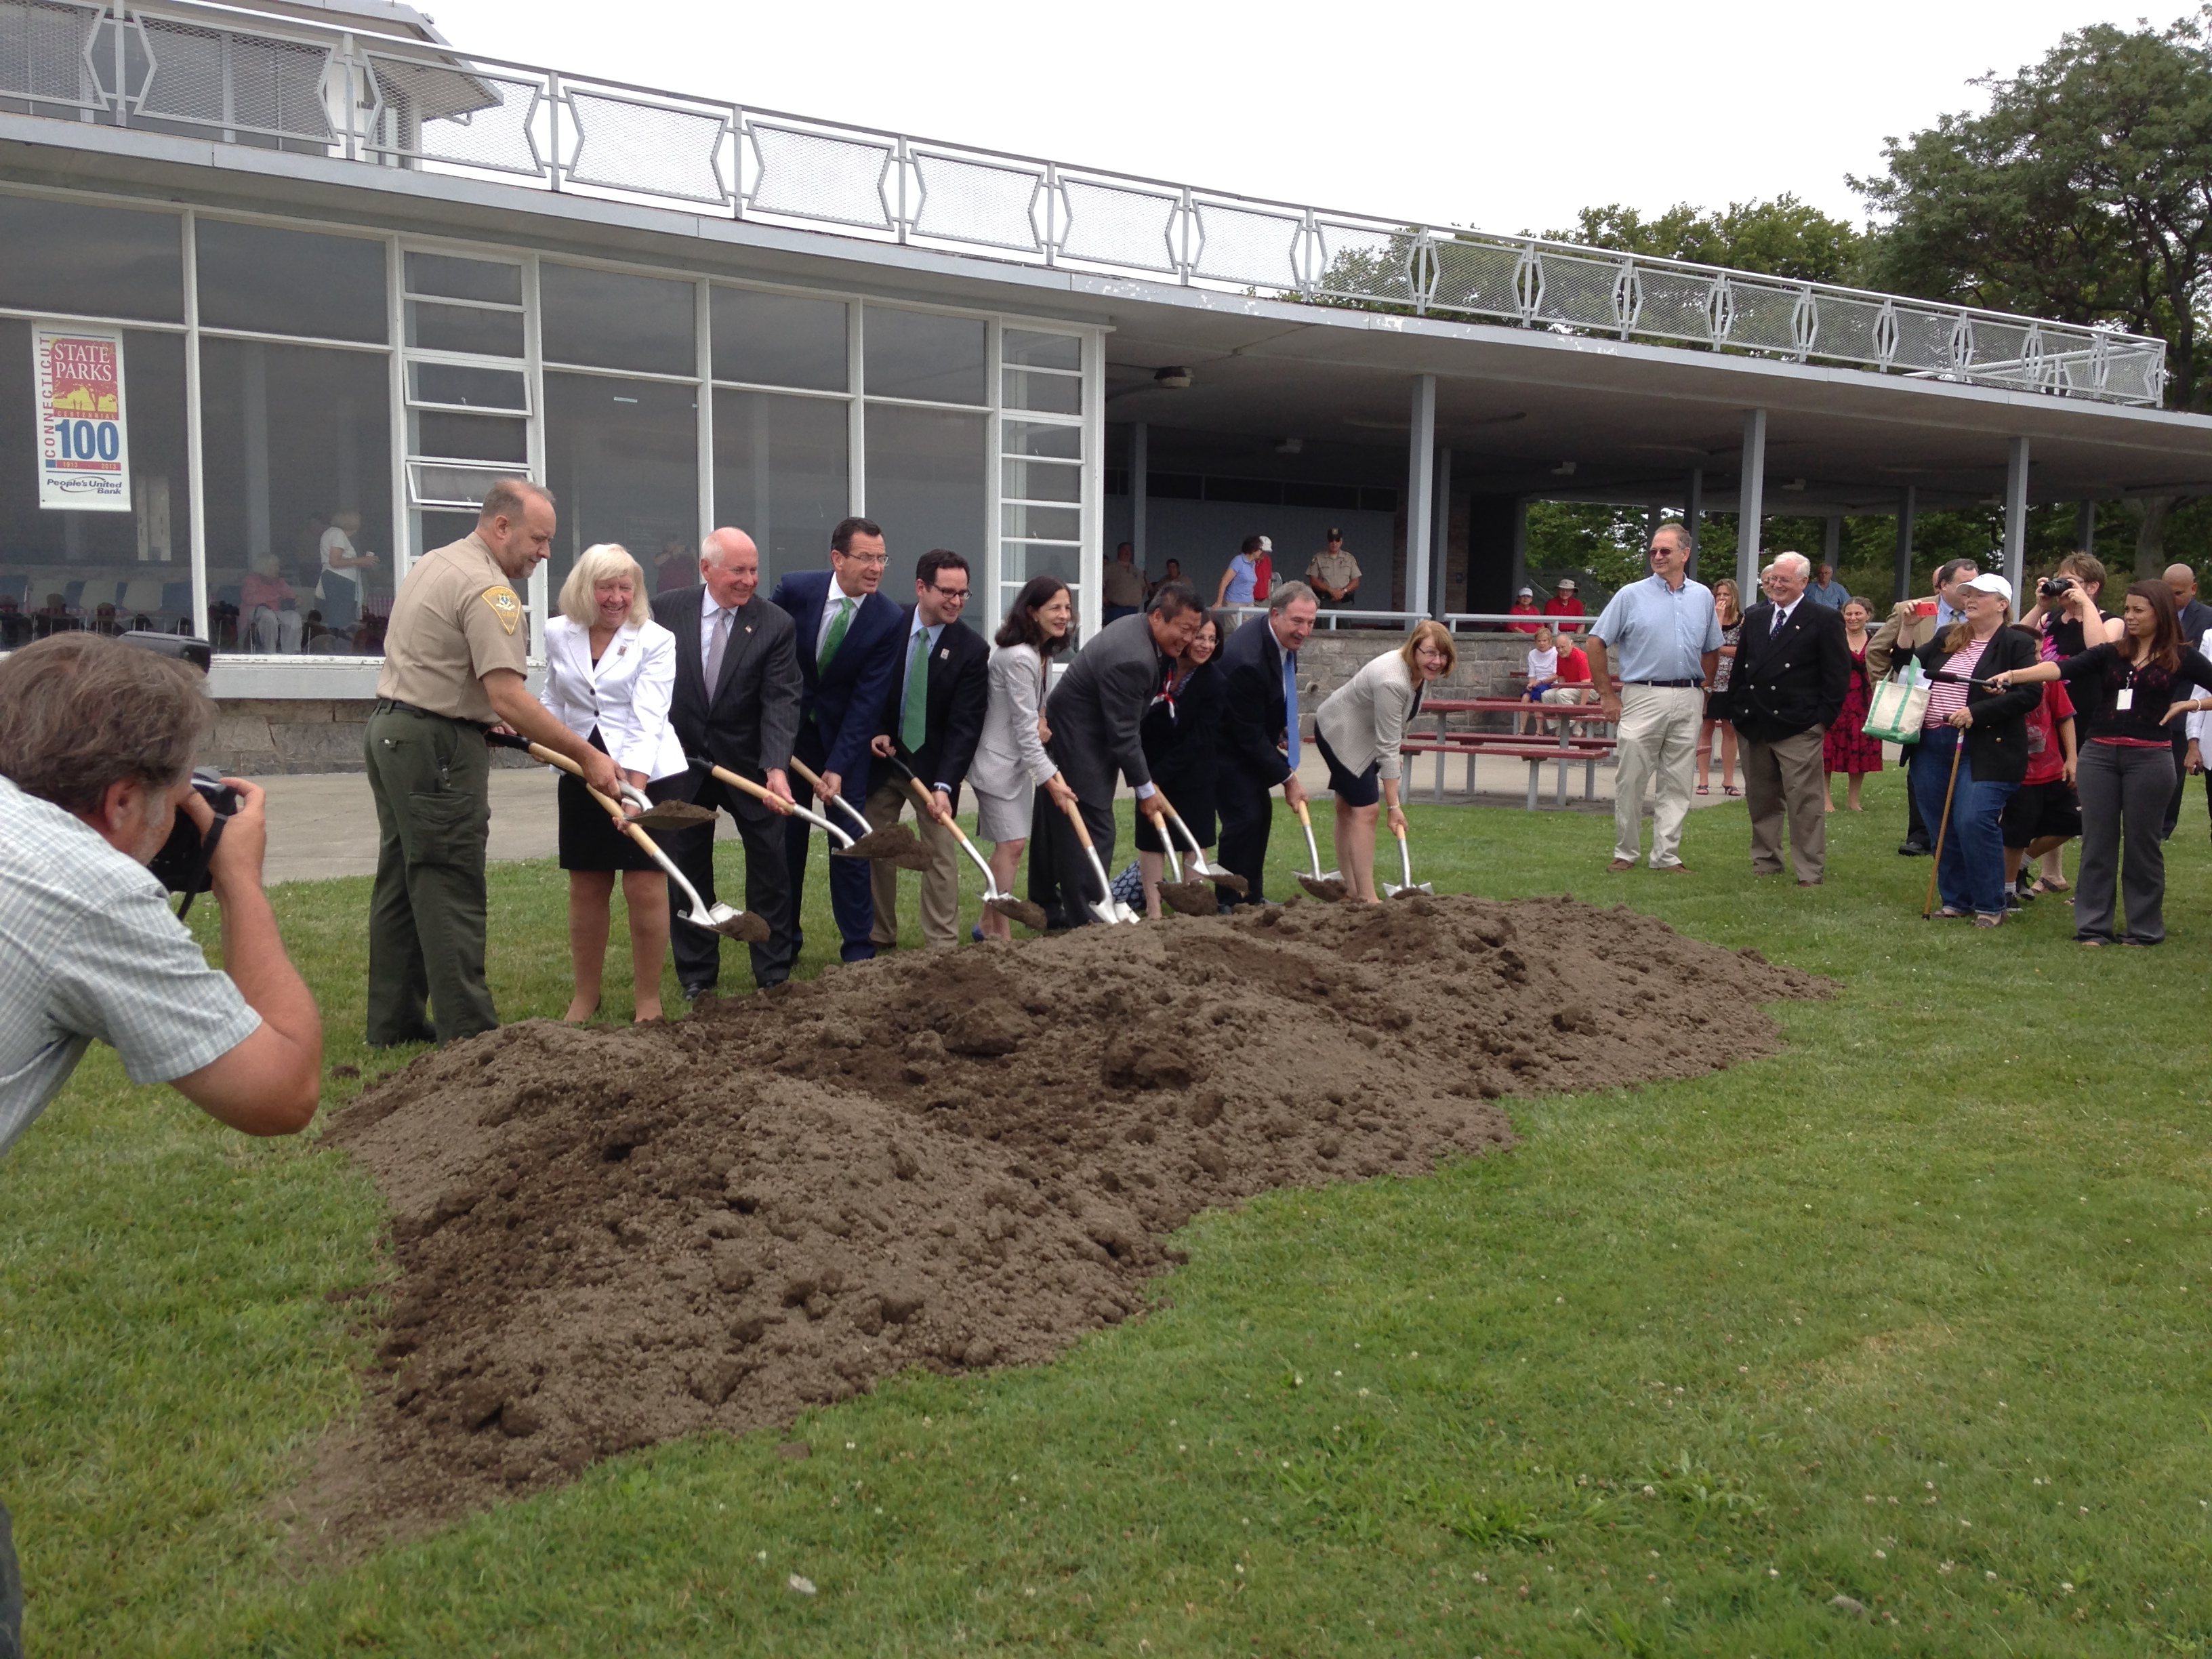 Groundbreaking for Renovation of Sherwood Island State Park Pavilion (14483790279).jpg Wednesday, July 16, 2014 -- Governor Dannel P. Malloy